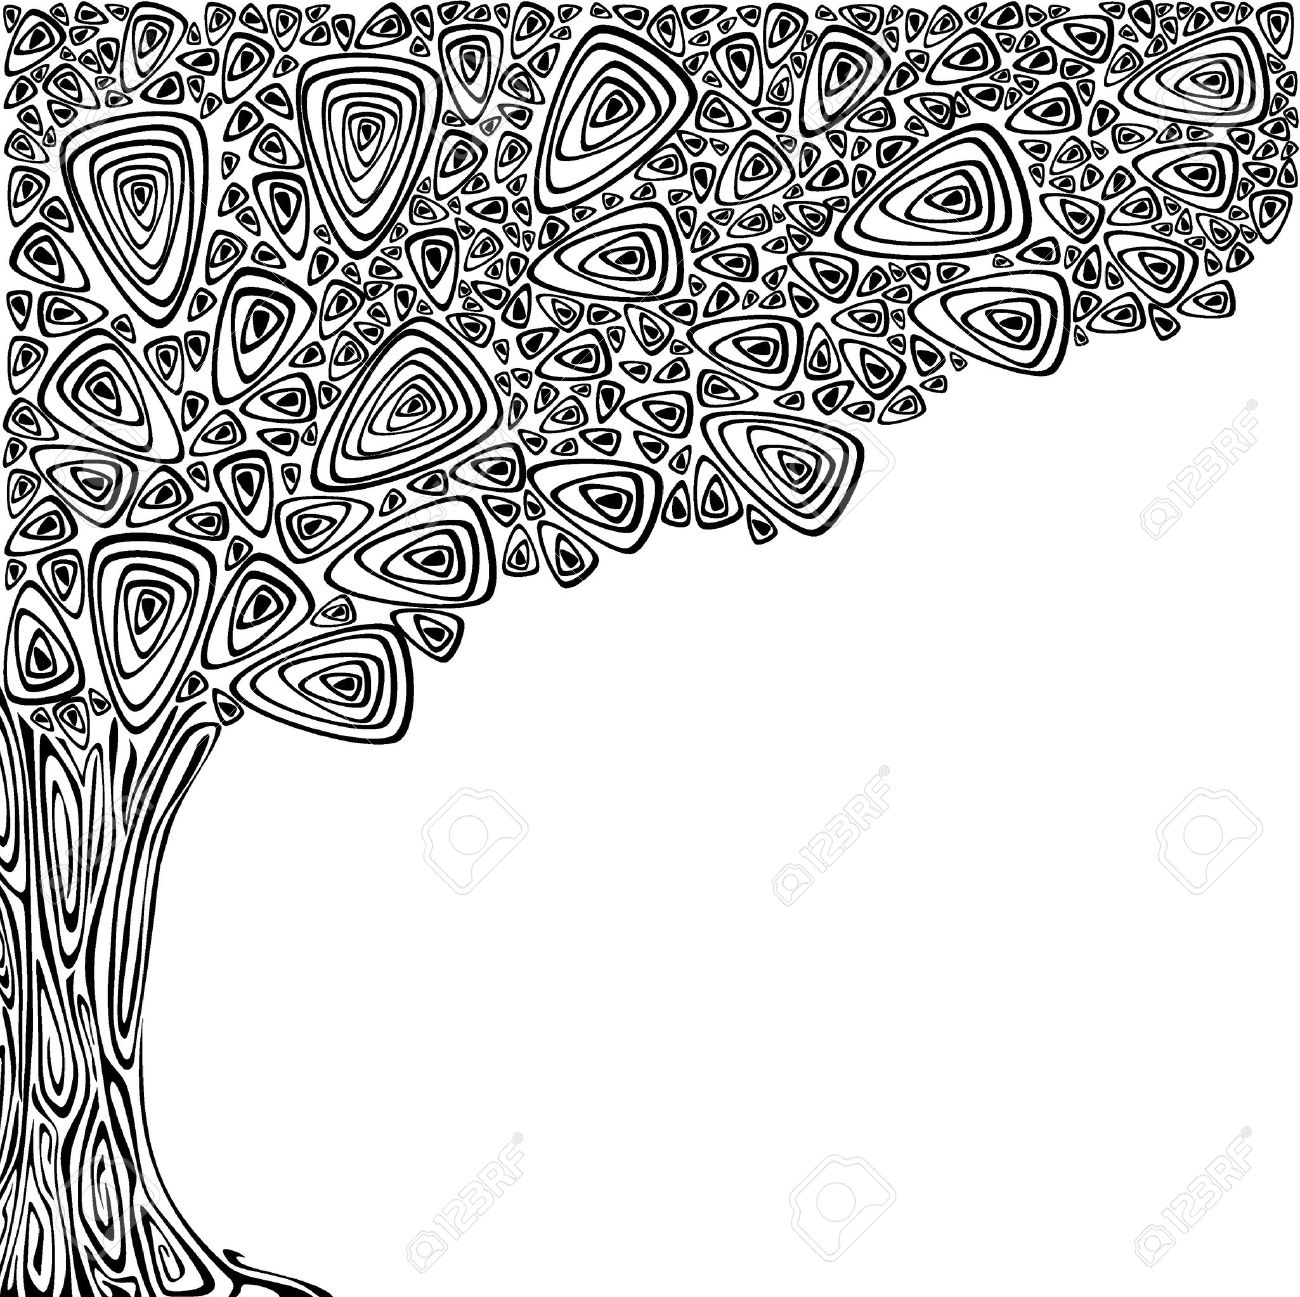 Background with an abstract tree. Black and white Stock Vector - 15312922